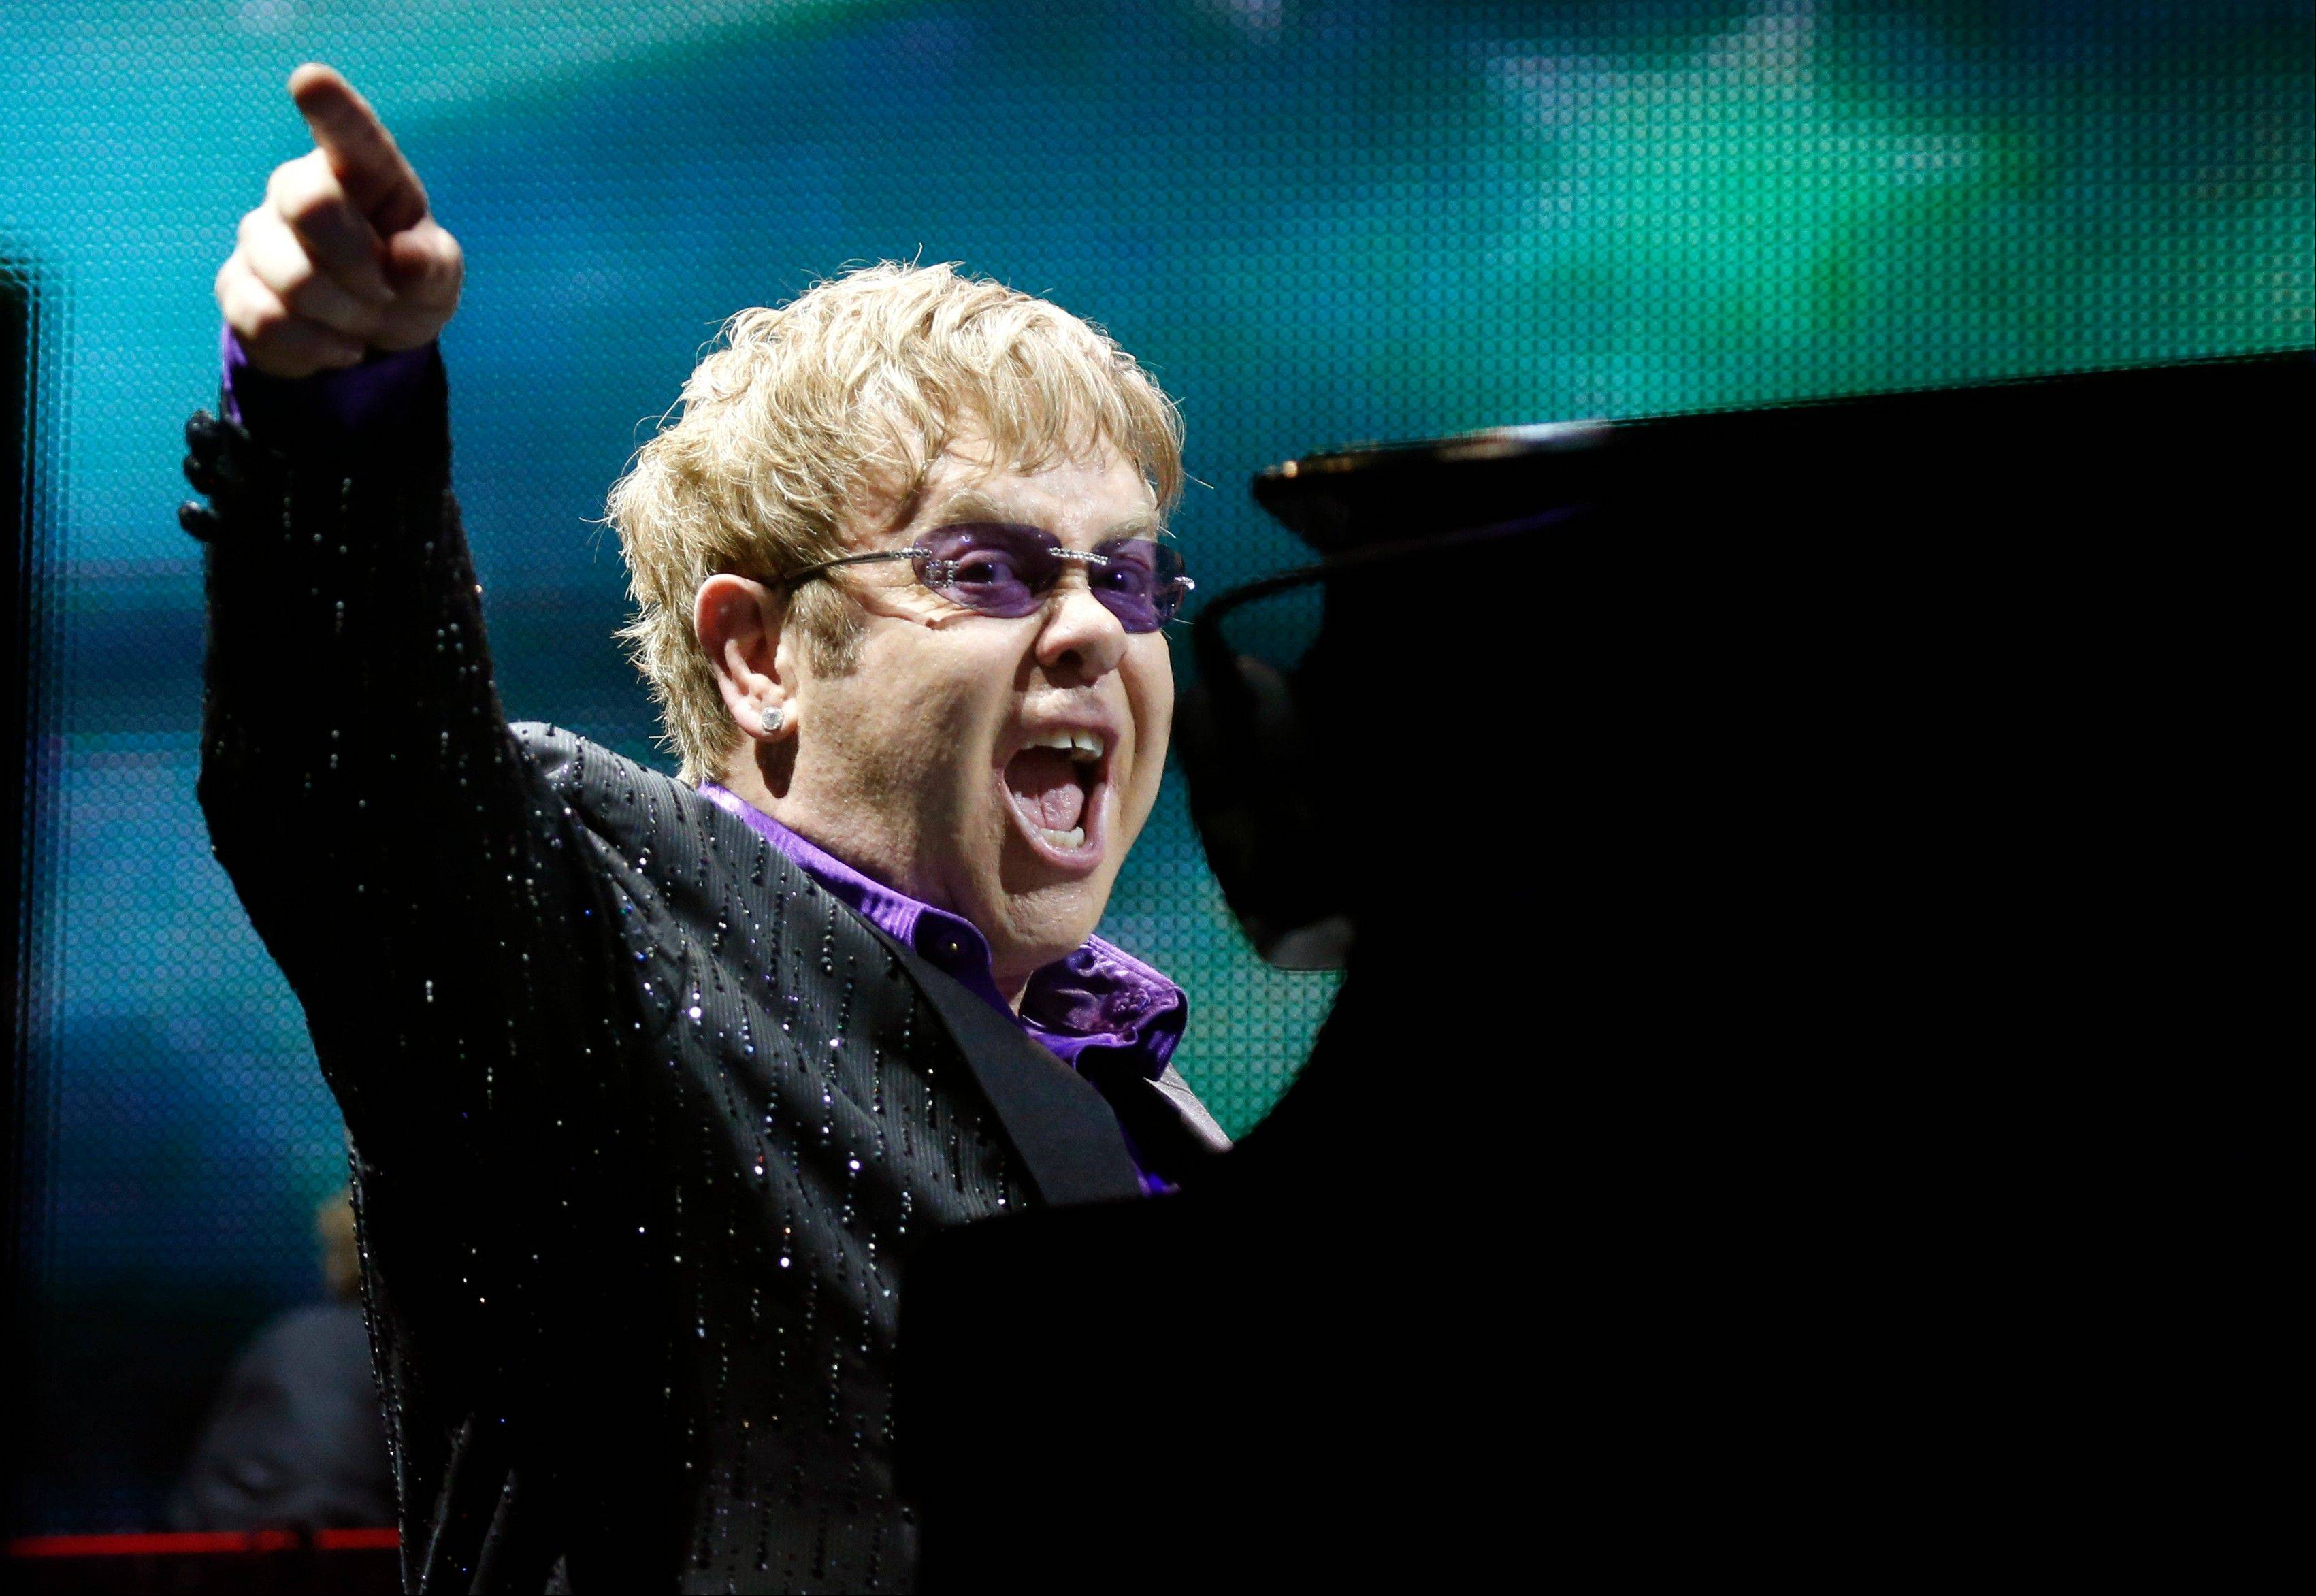 Elton John is set to perform at the Allstate Arena in Rosemont on Saturday, Nov. 30.